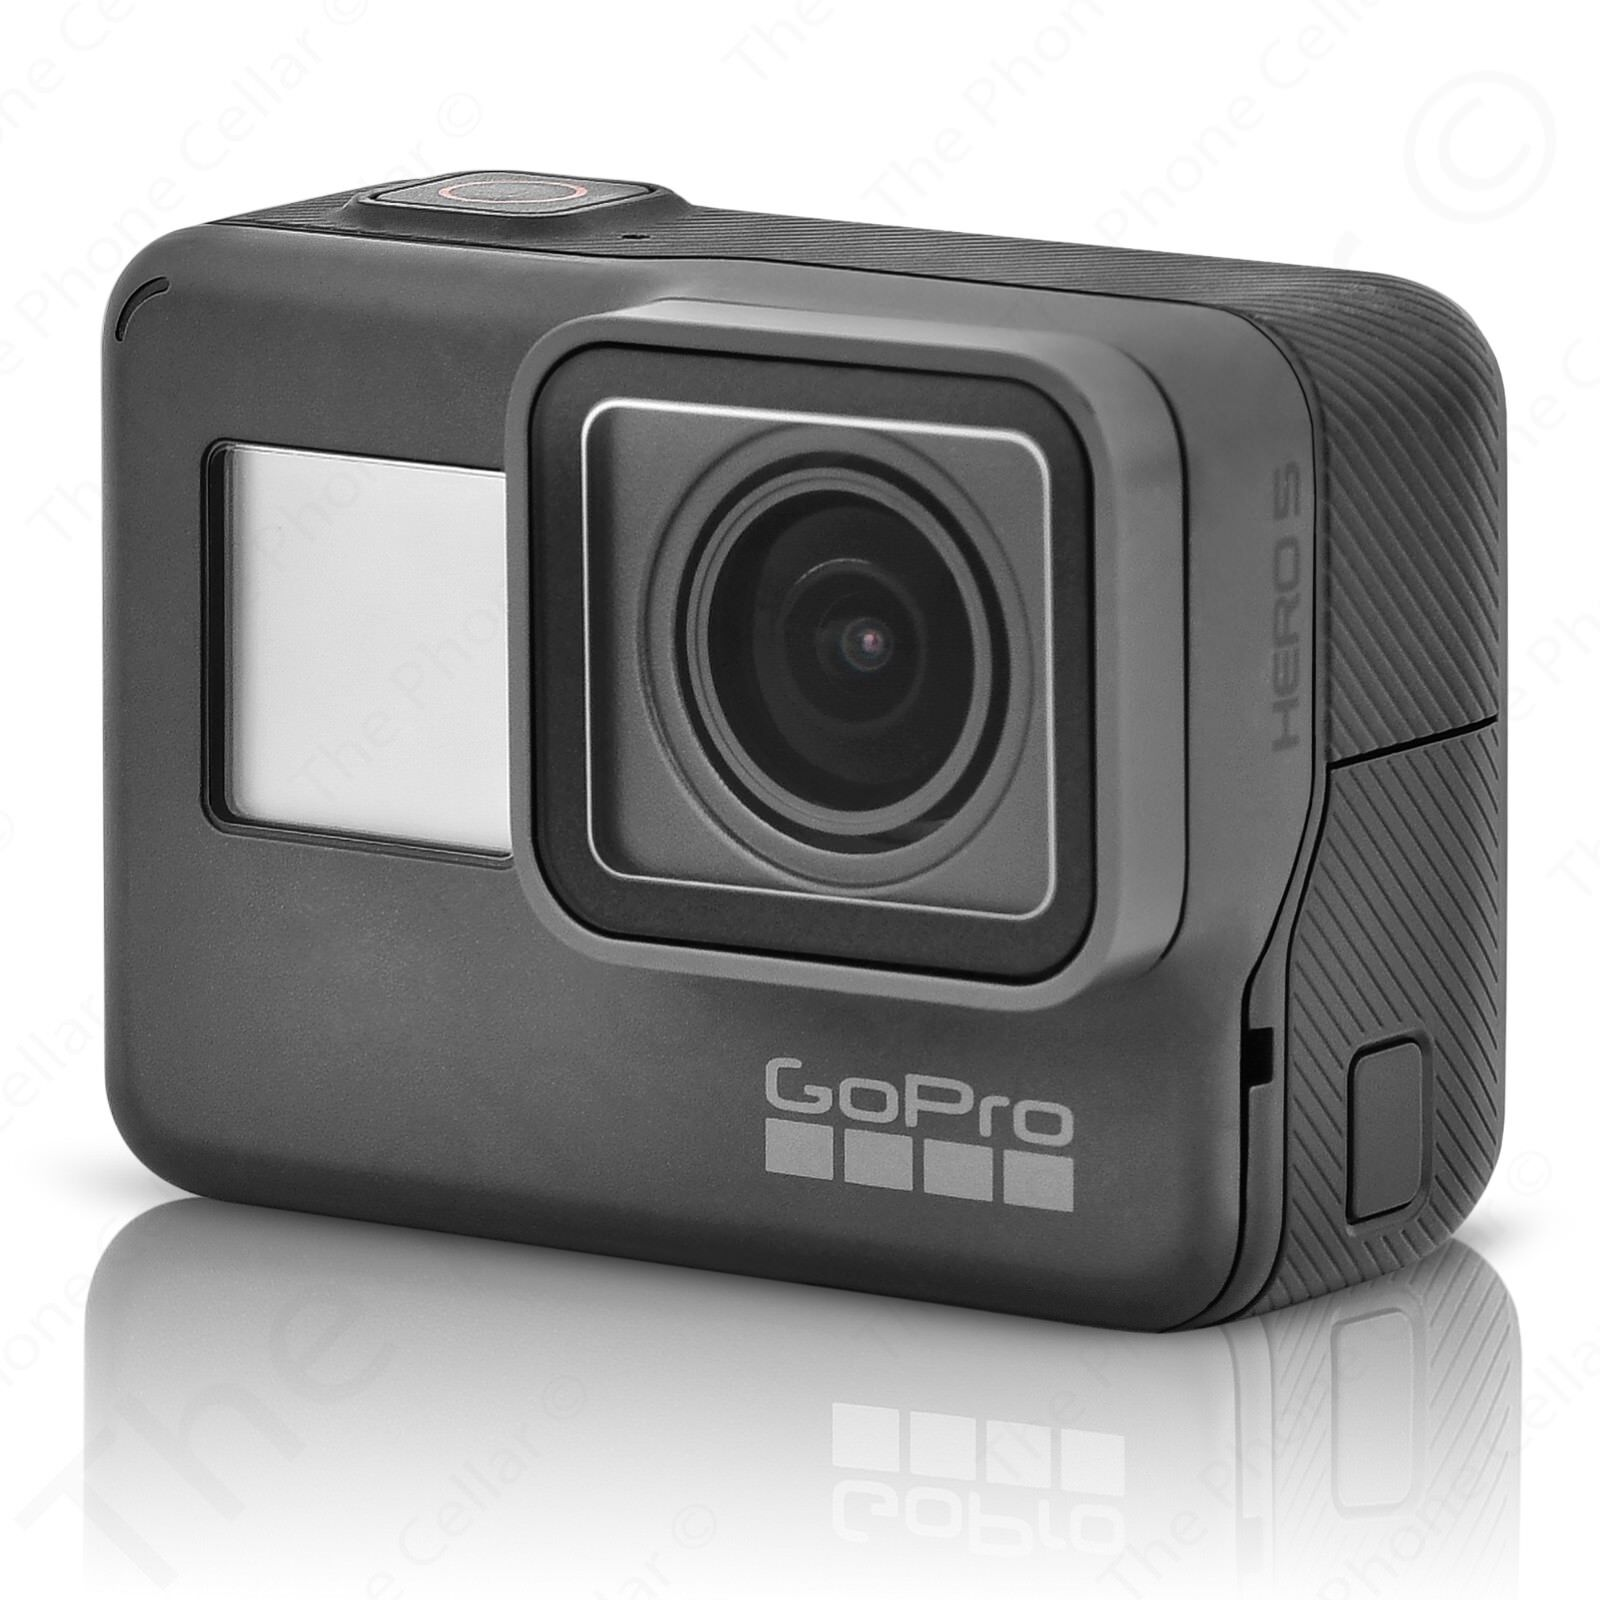 GoPro Hero 5 Black 4K Action Camera HD Camcorder Waterproof Defective LCD